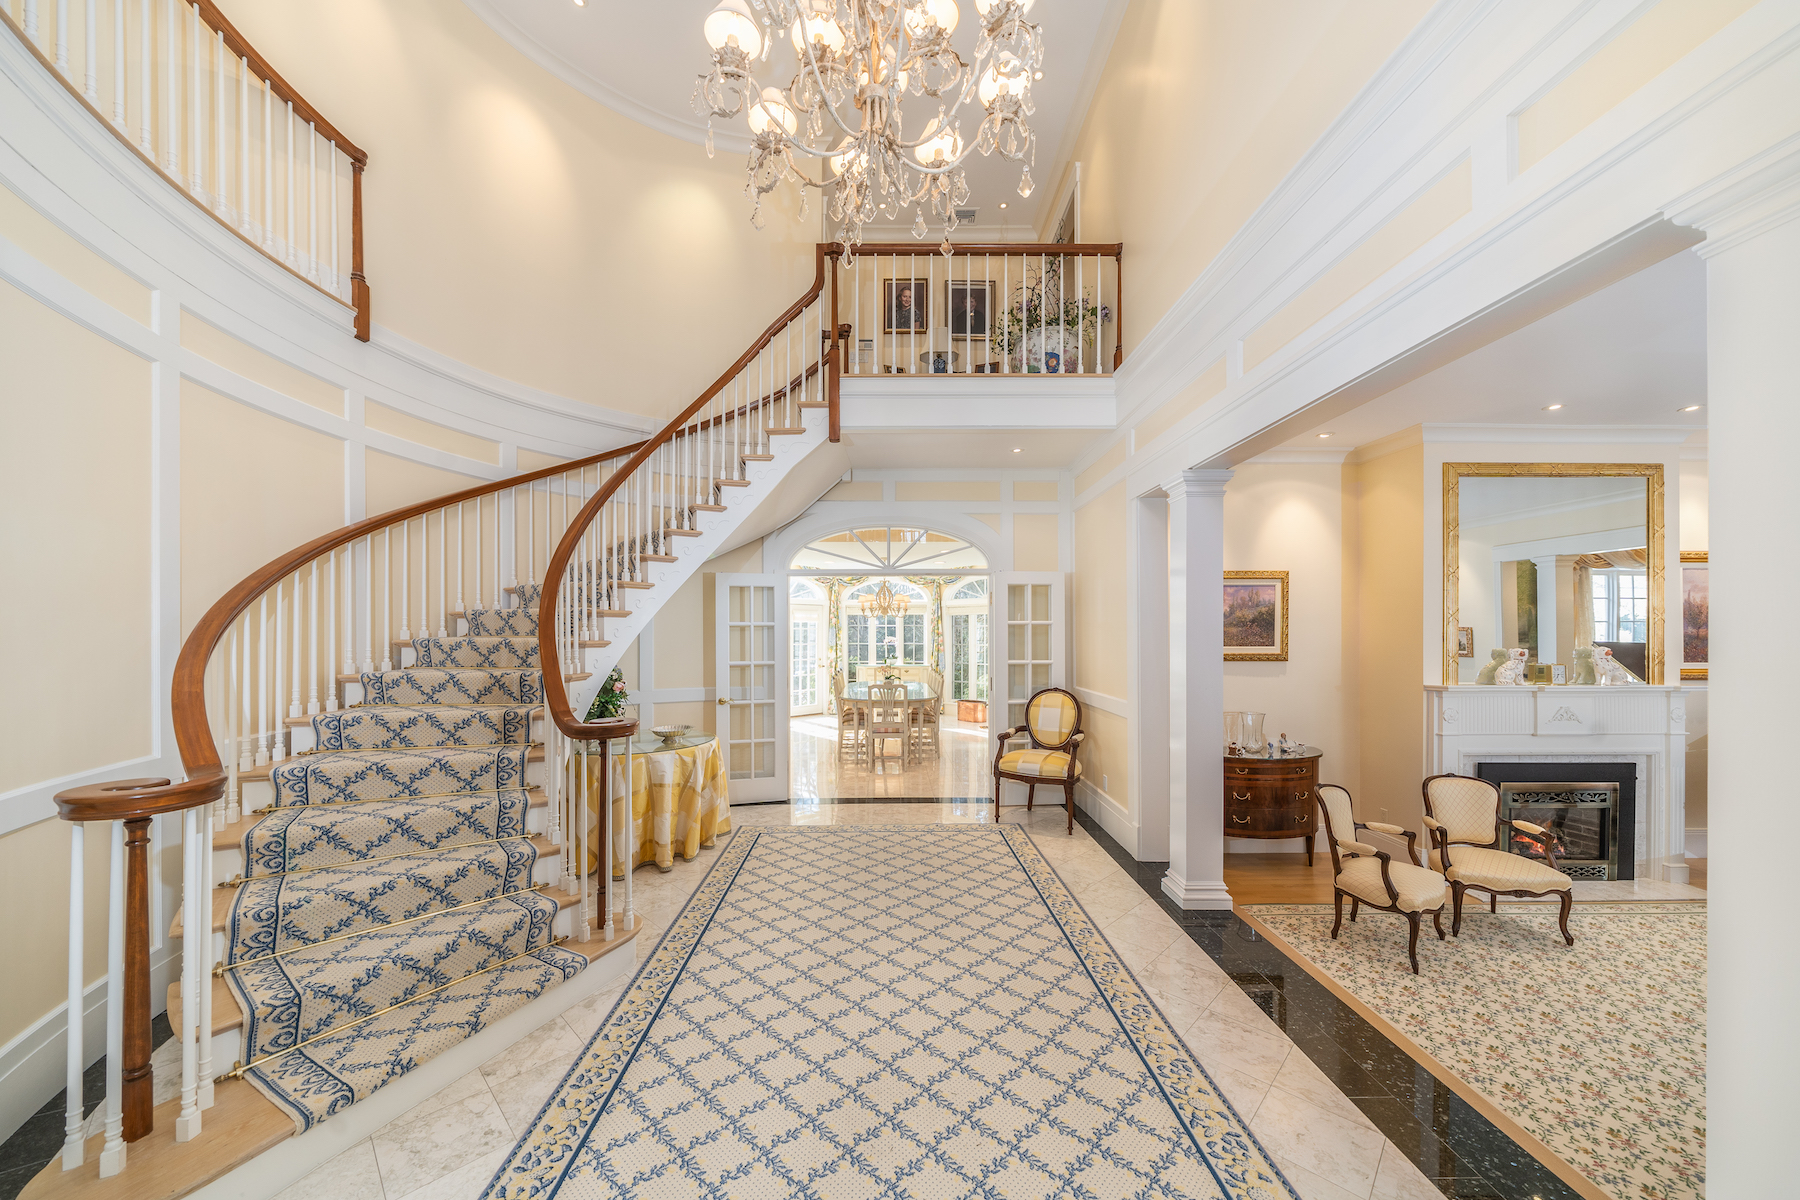 Single Family Home for Active at Exceptional Location And Design 10 Old England Road Newton, Massachusetts 02467 United States